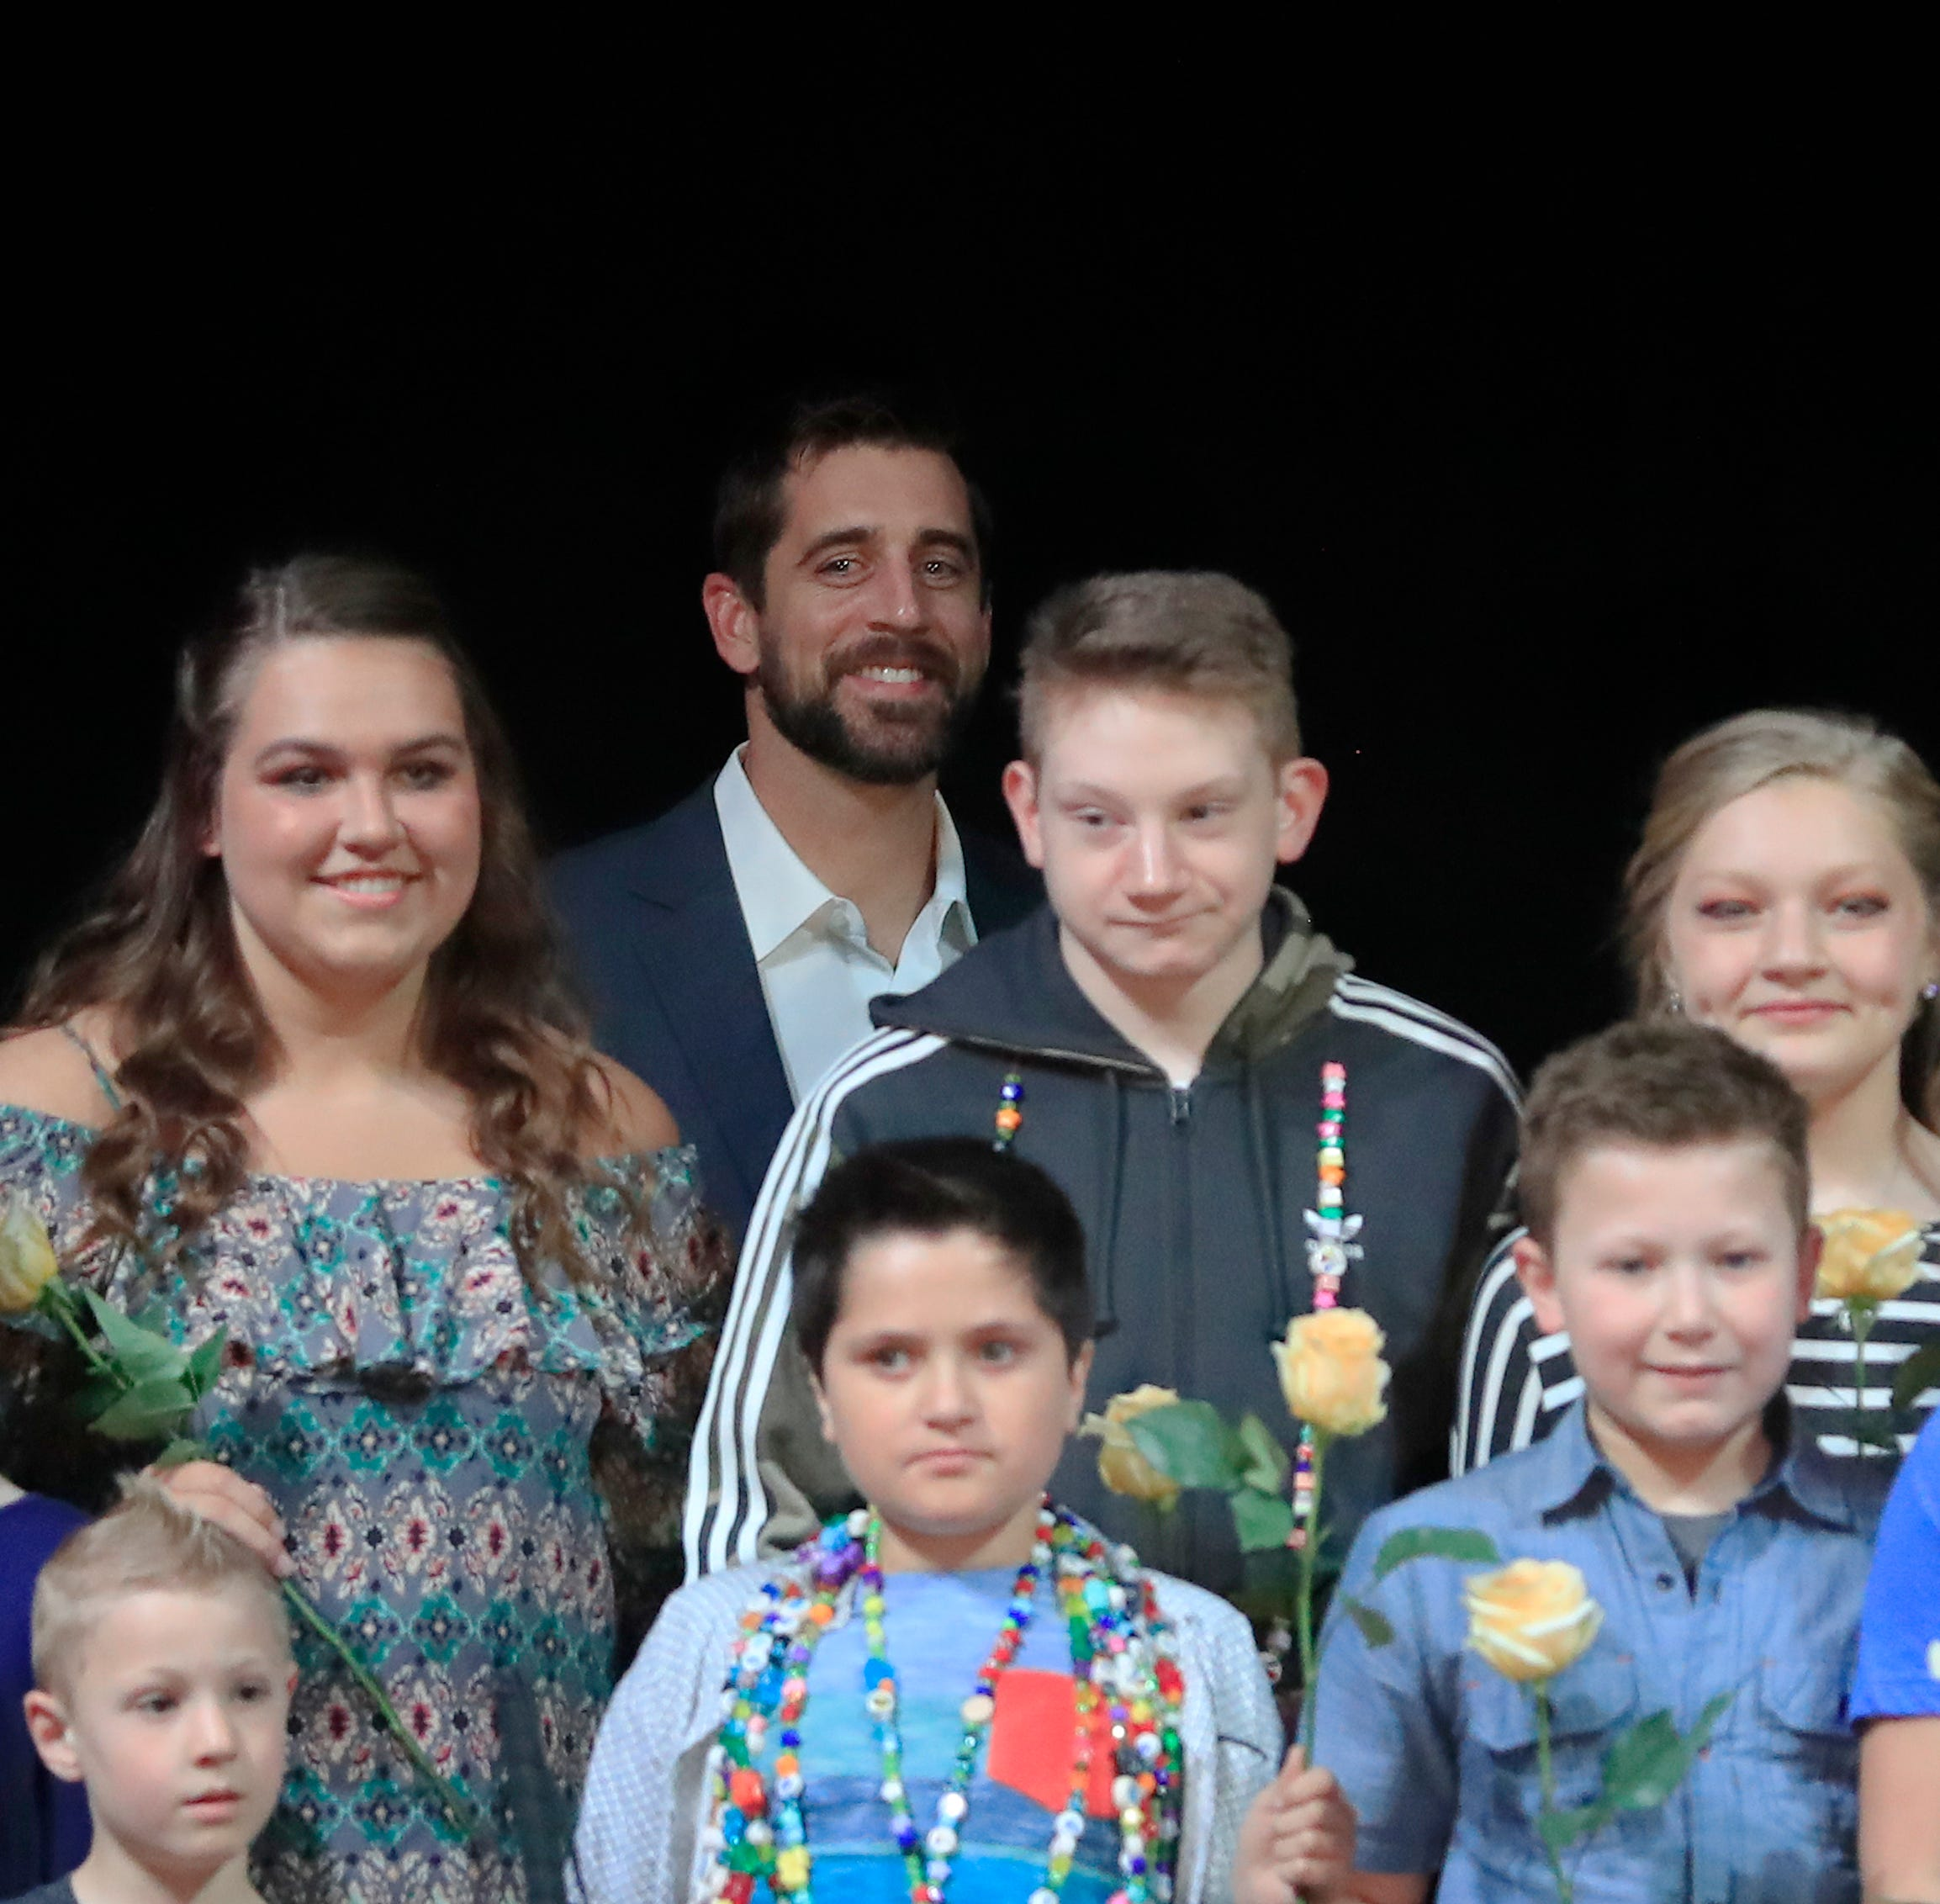 Aaron Rodgers surprises child cancer survivors on runway, signs jersey that raises $11,000